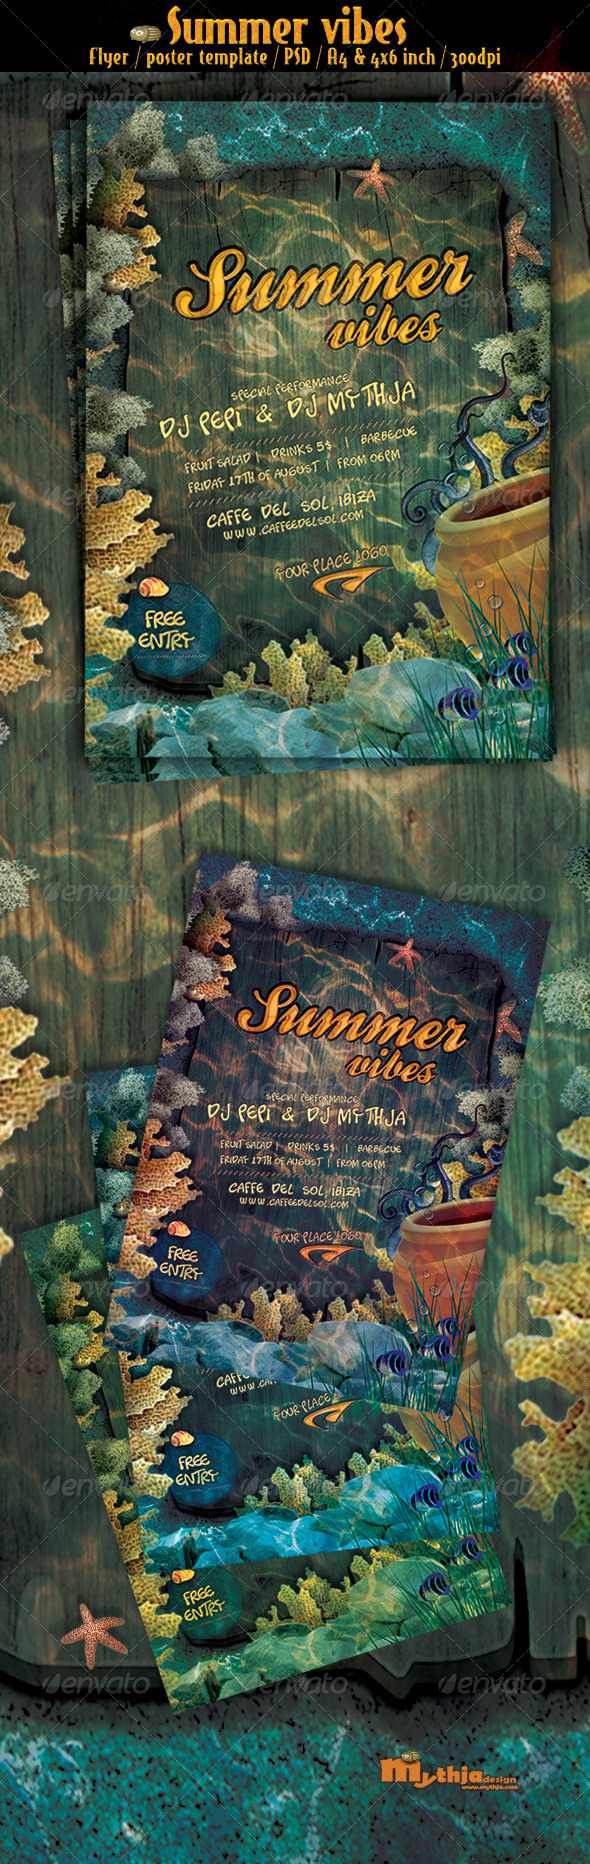 Summer vibes vol.1 - party flyer/poster template - Flyers Print Templates